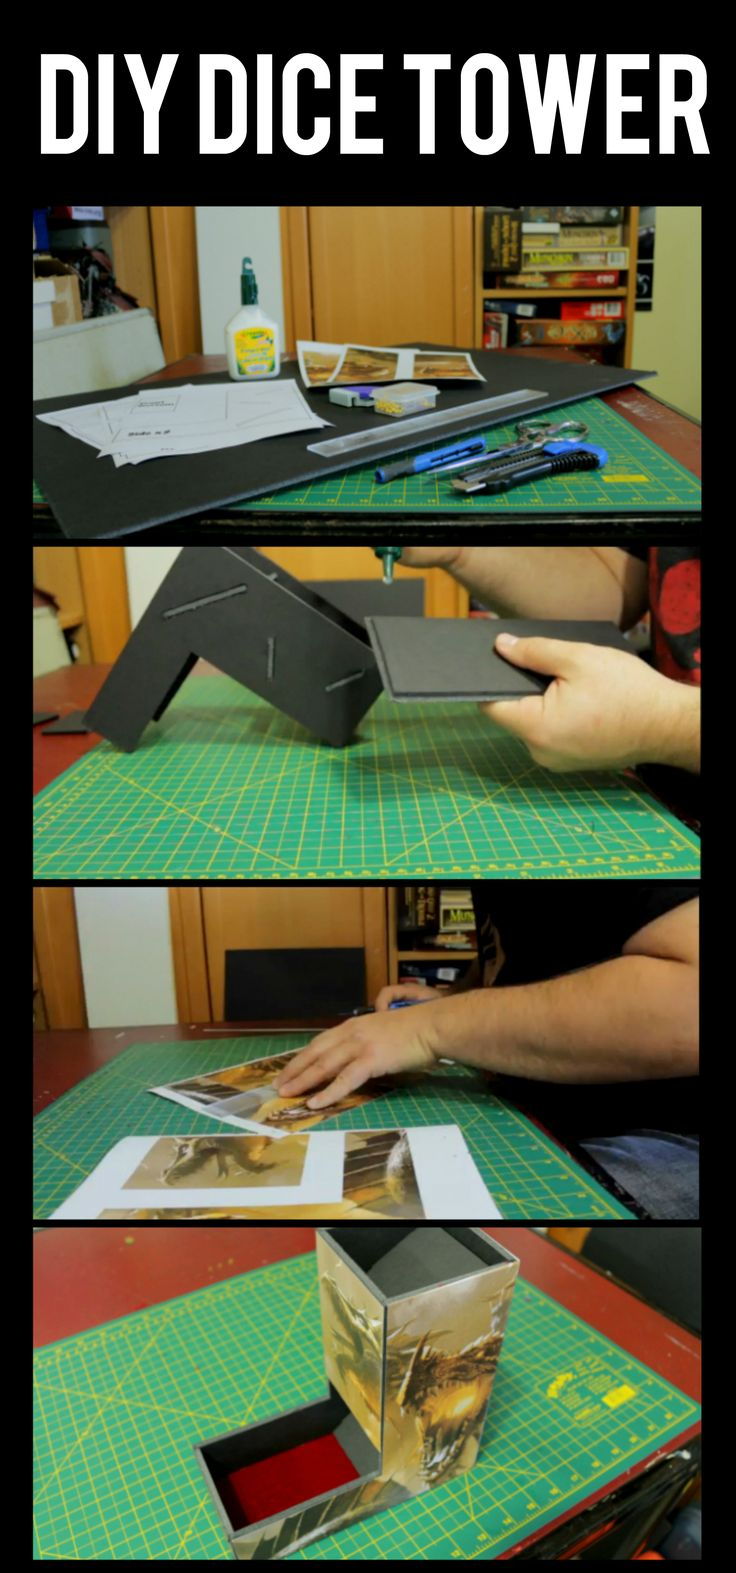 Create your own dice tower! Click to watch the tutorial #dicetower #dice #diy #project #crafts